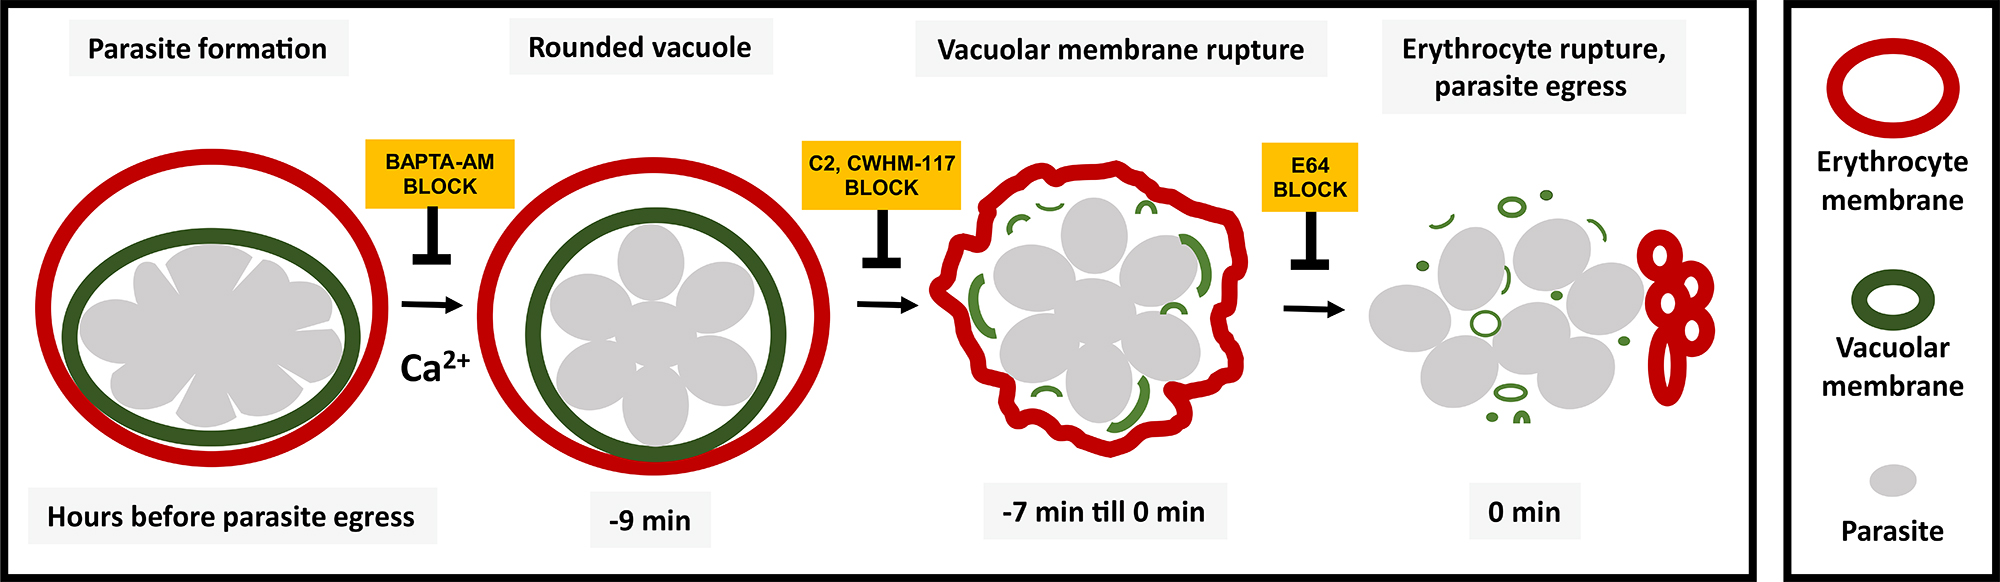 hight resolution of diagram showing the sequence of events involved in rupture of the vacuole and host cell membrane